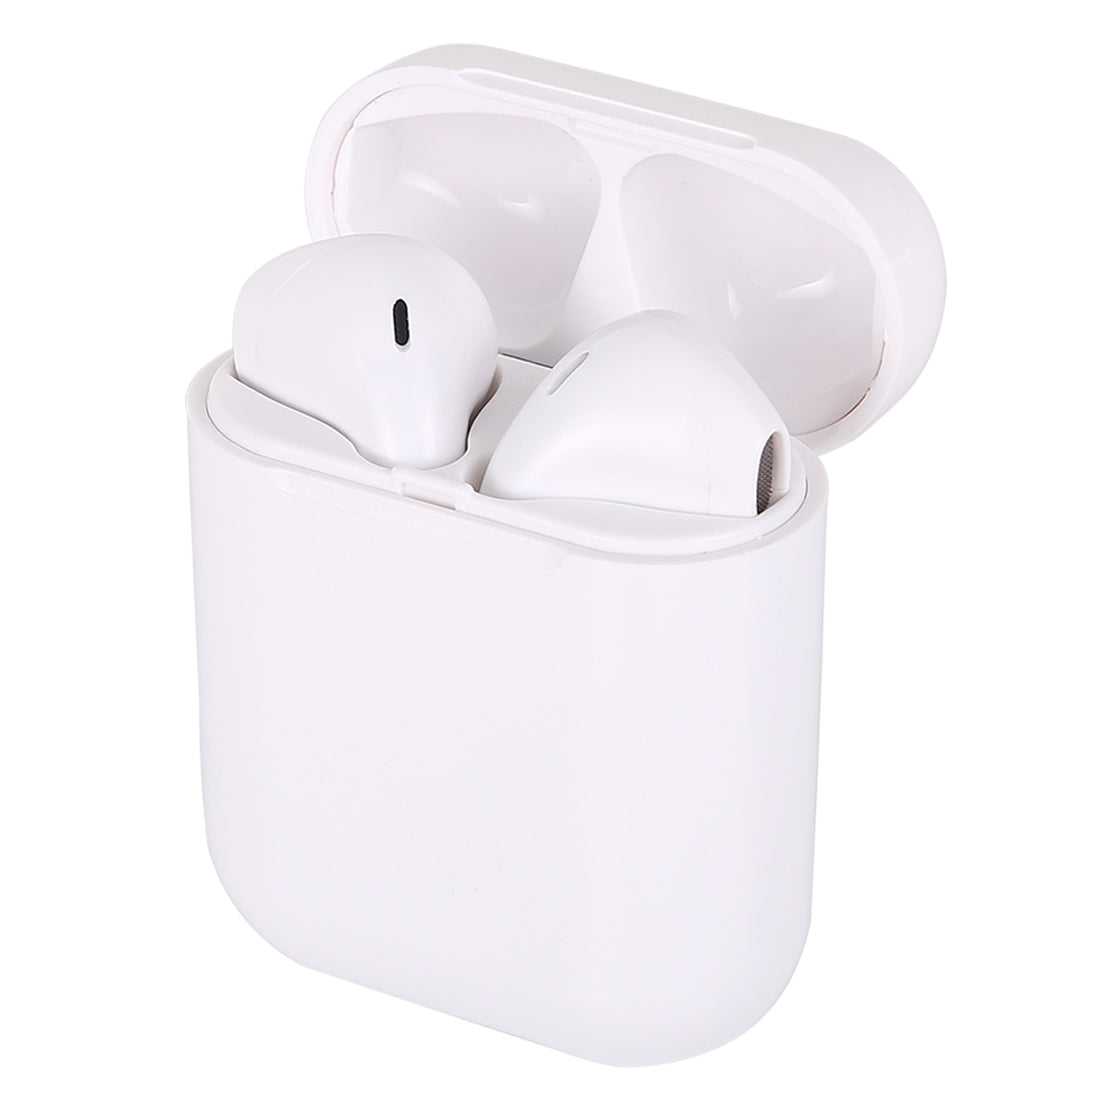 i9S-TWS Bluetooth V5.0 Wireless Stereo Earphones with Magnetic Charging Box, Compatible with iOS & Android